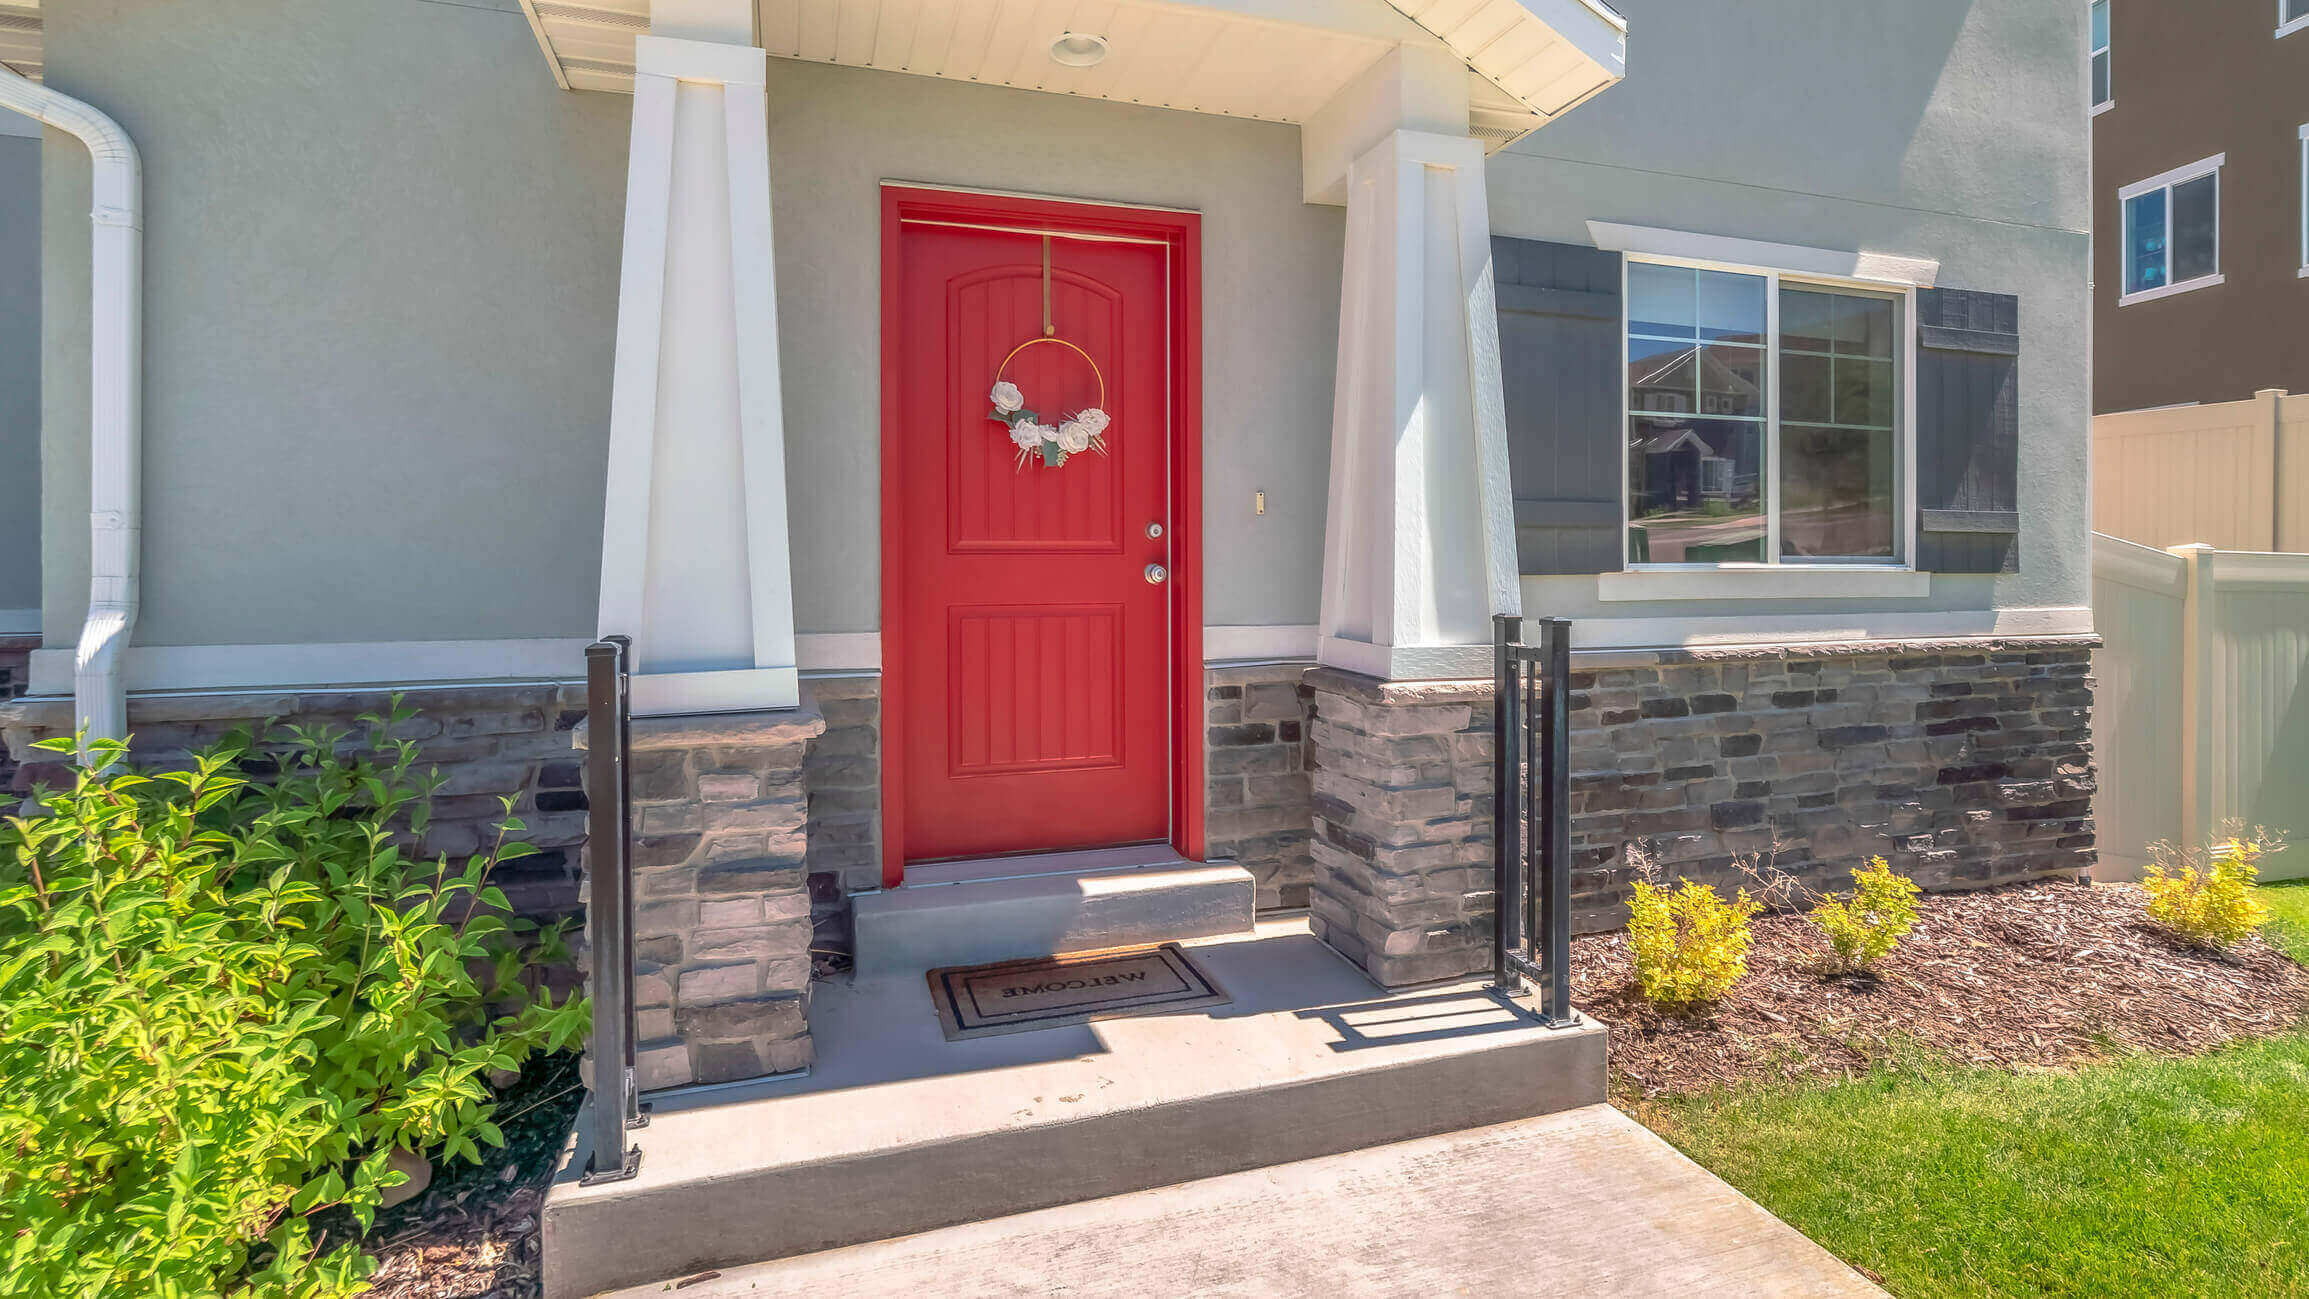 Exterior of a home with a red door